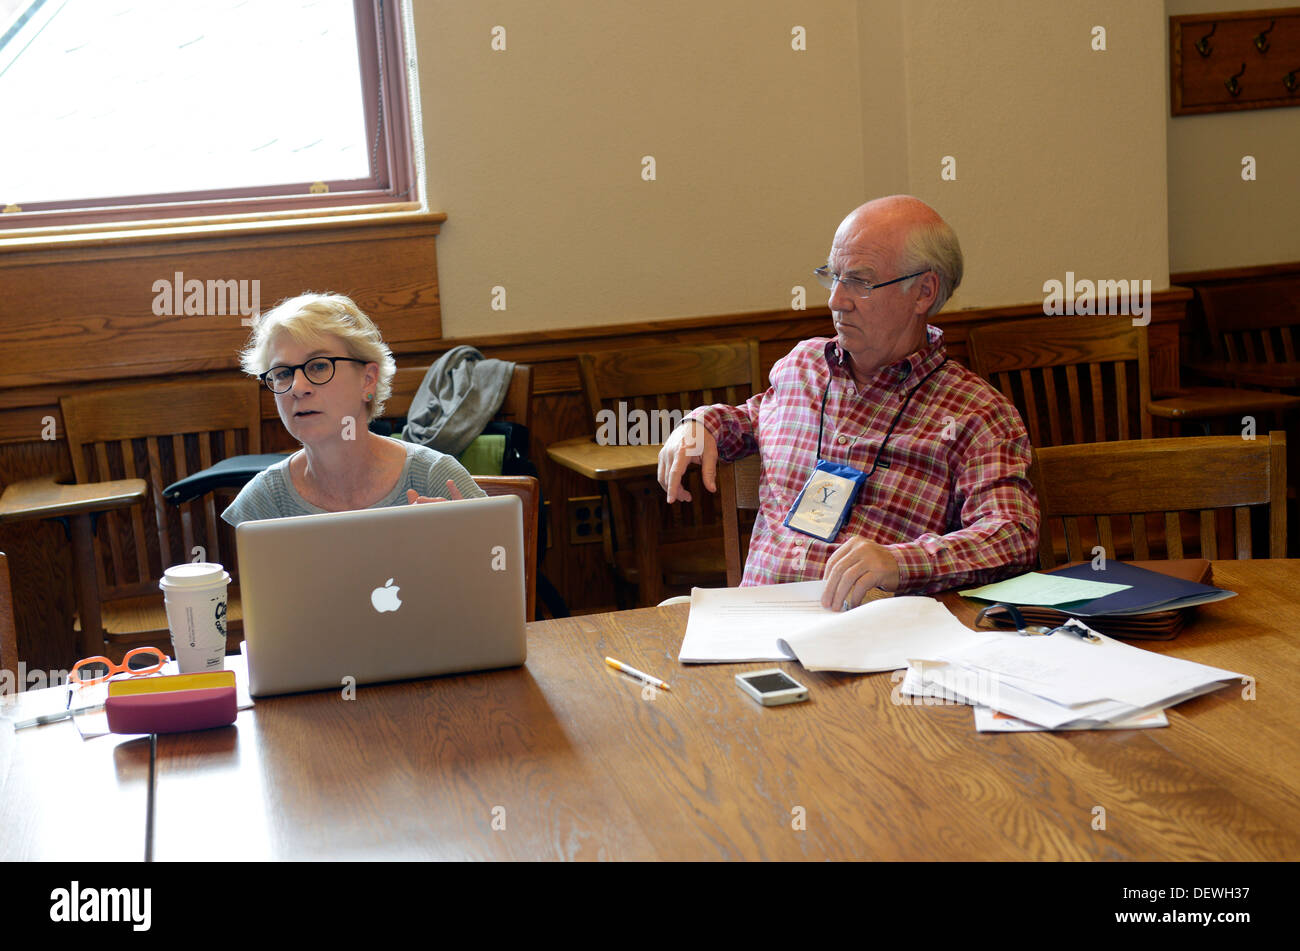 Writer's Workshop, Yale Summer School. Workshop participants in seminars. - Stock Image